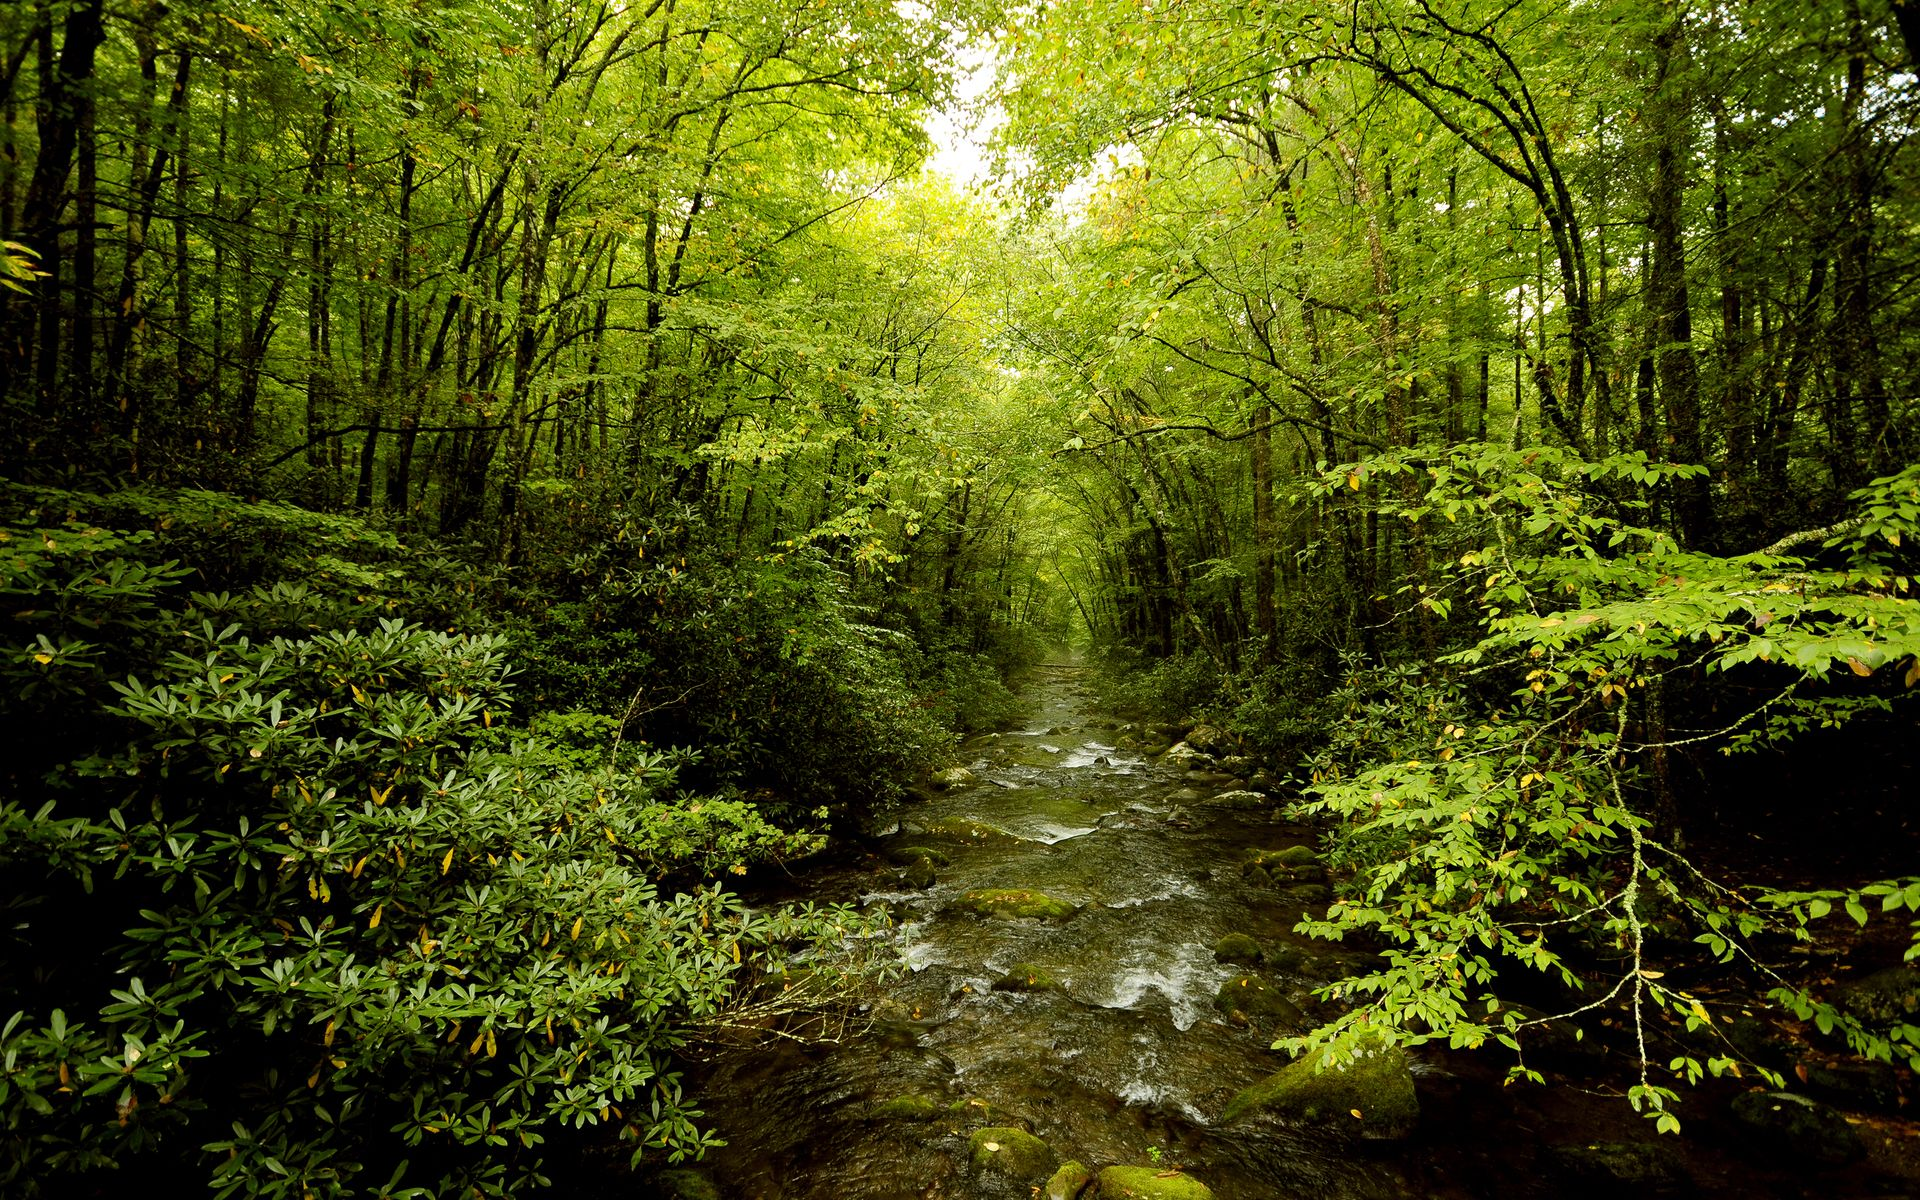 Forest River Wallpaper Rivers Nature Wallpapers in jpg format for ...